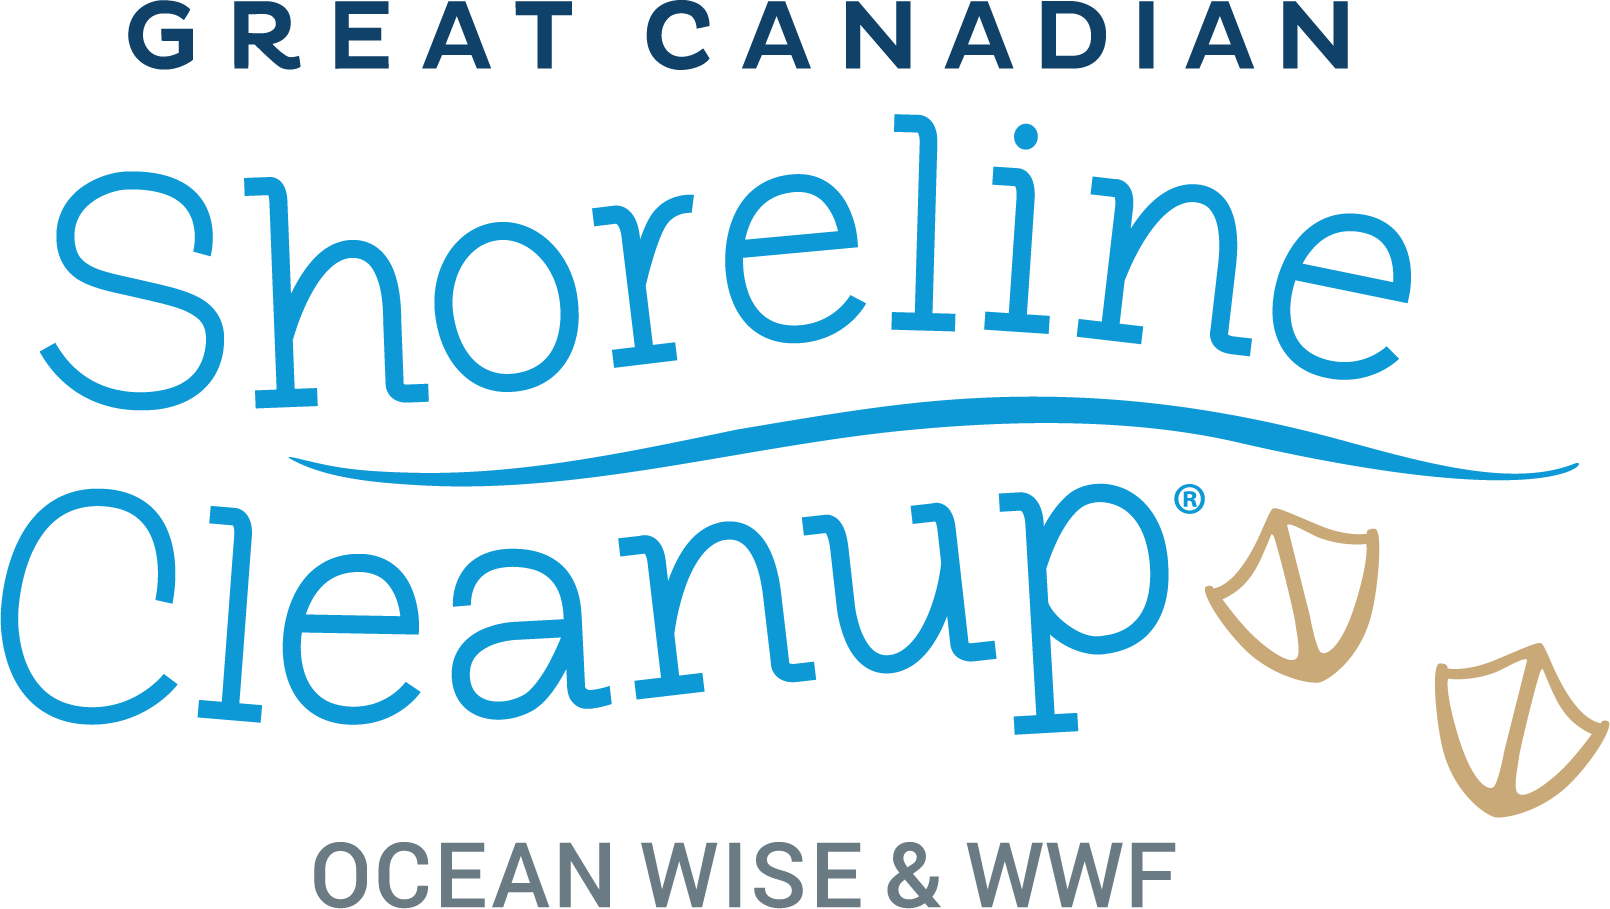 Great Canadian Shoreline Clean-Up logo.png